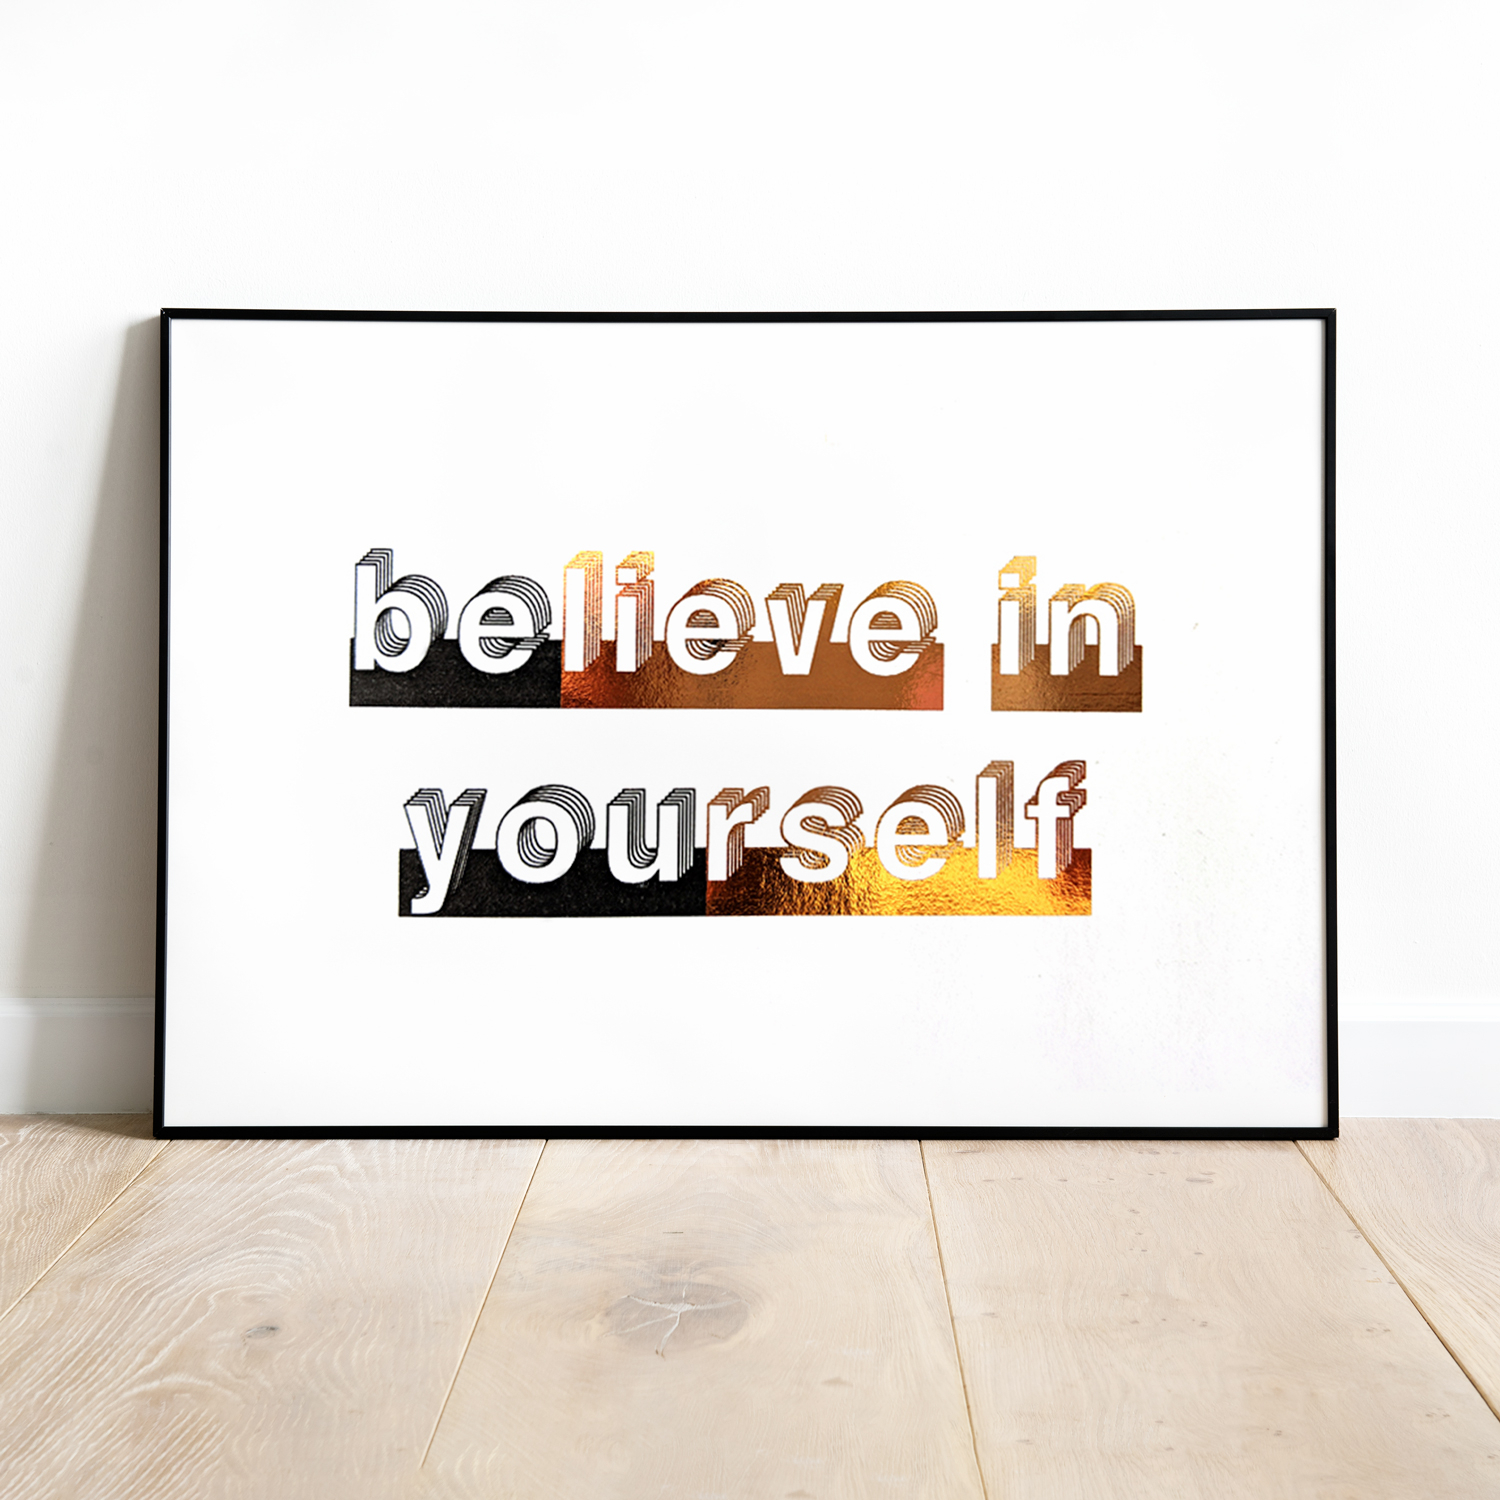 Believe In Yourself, Foil Wall Art, Typography Print, Gift For Her, Gift For Him, Wall Decor, Inspirational Prints, Motivate, Minimal Design Throughout Rectangle Like Yourself Inspirational Typography Wall Plaque (View 10 of 30)